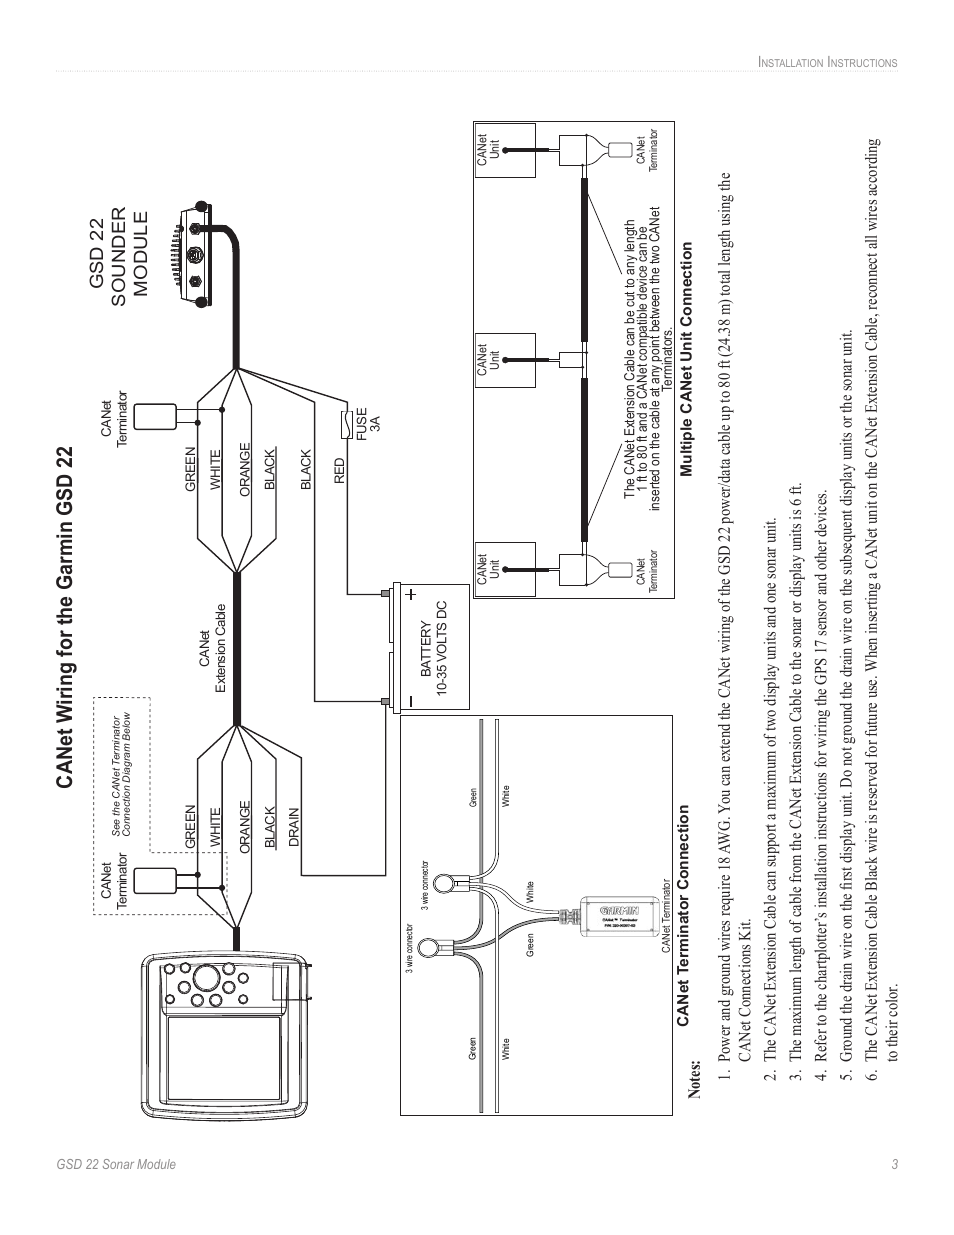 garmin gsd 22 wiring diagram